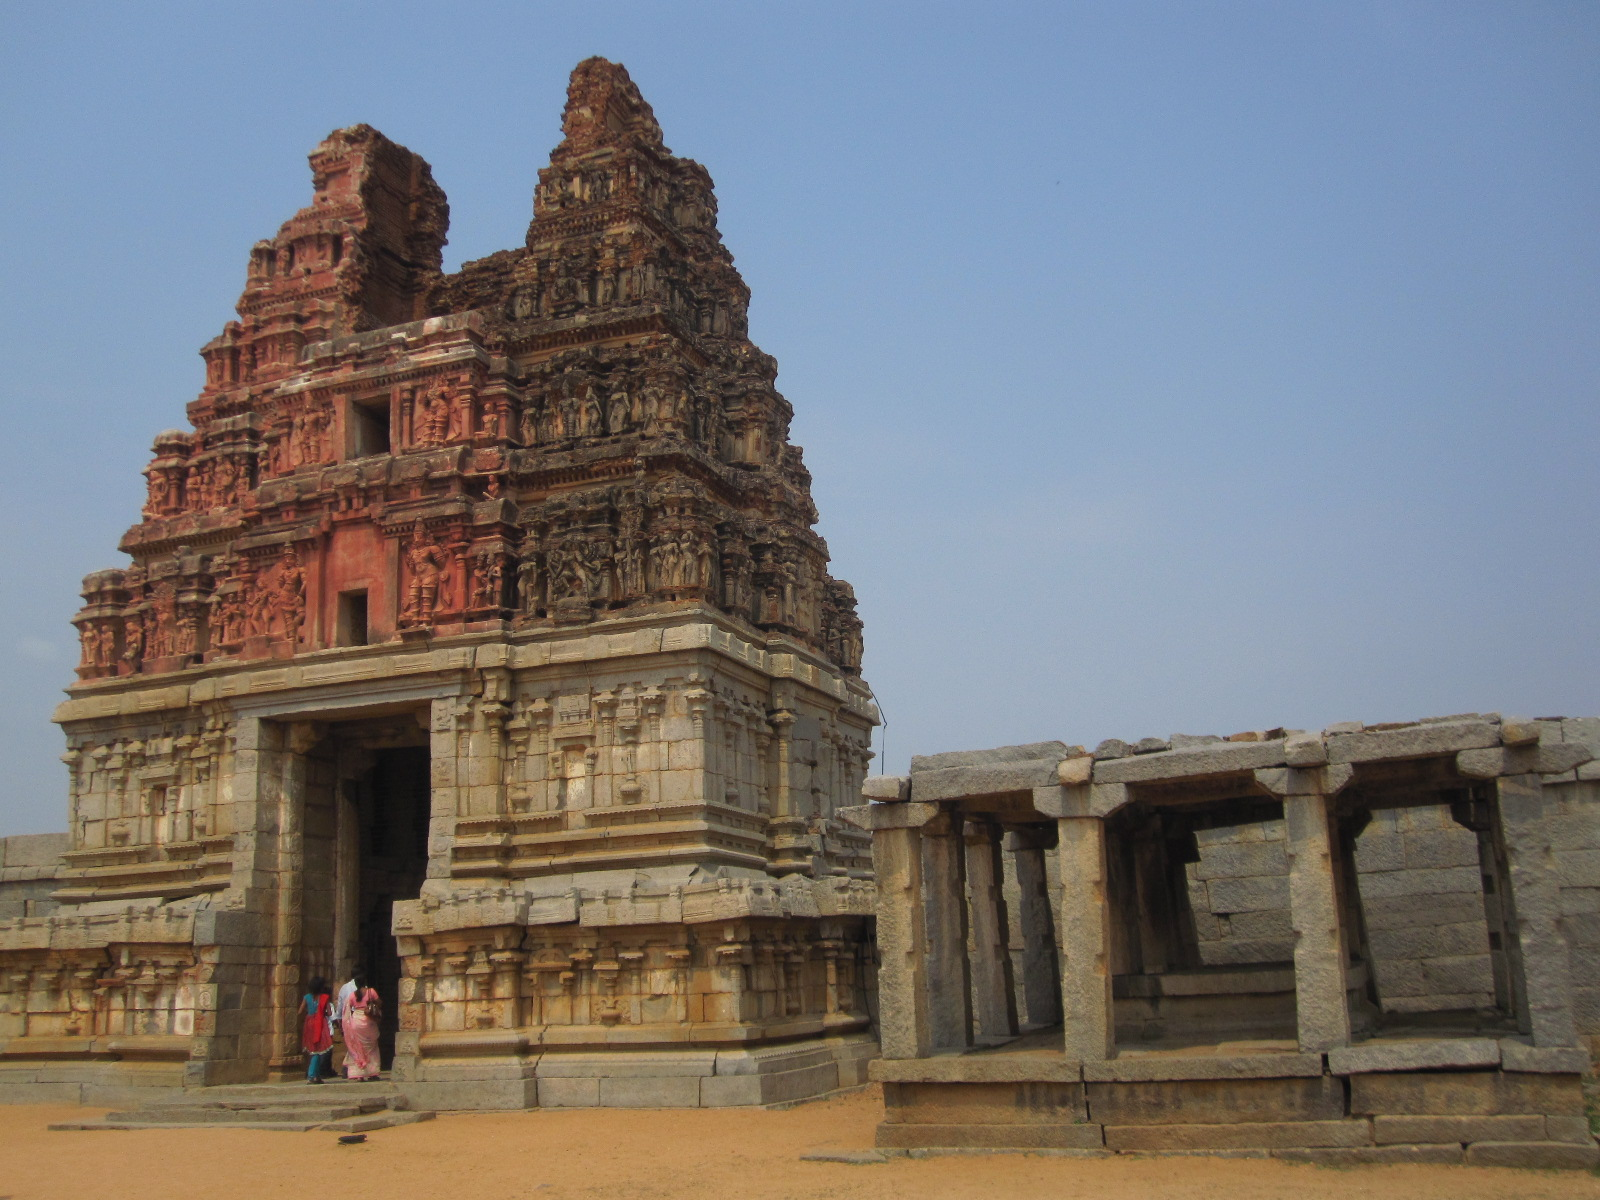 Vittala Temple. This is probably the most notable among the monuments, especially for its Stone Chariot.